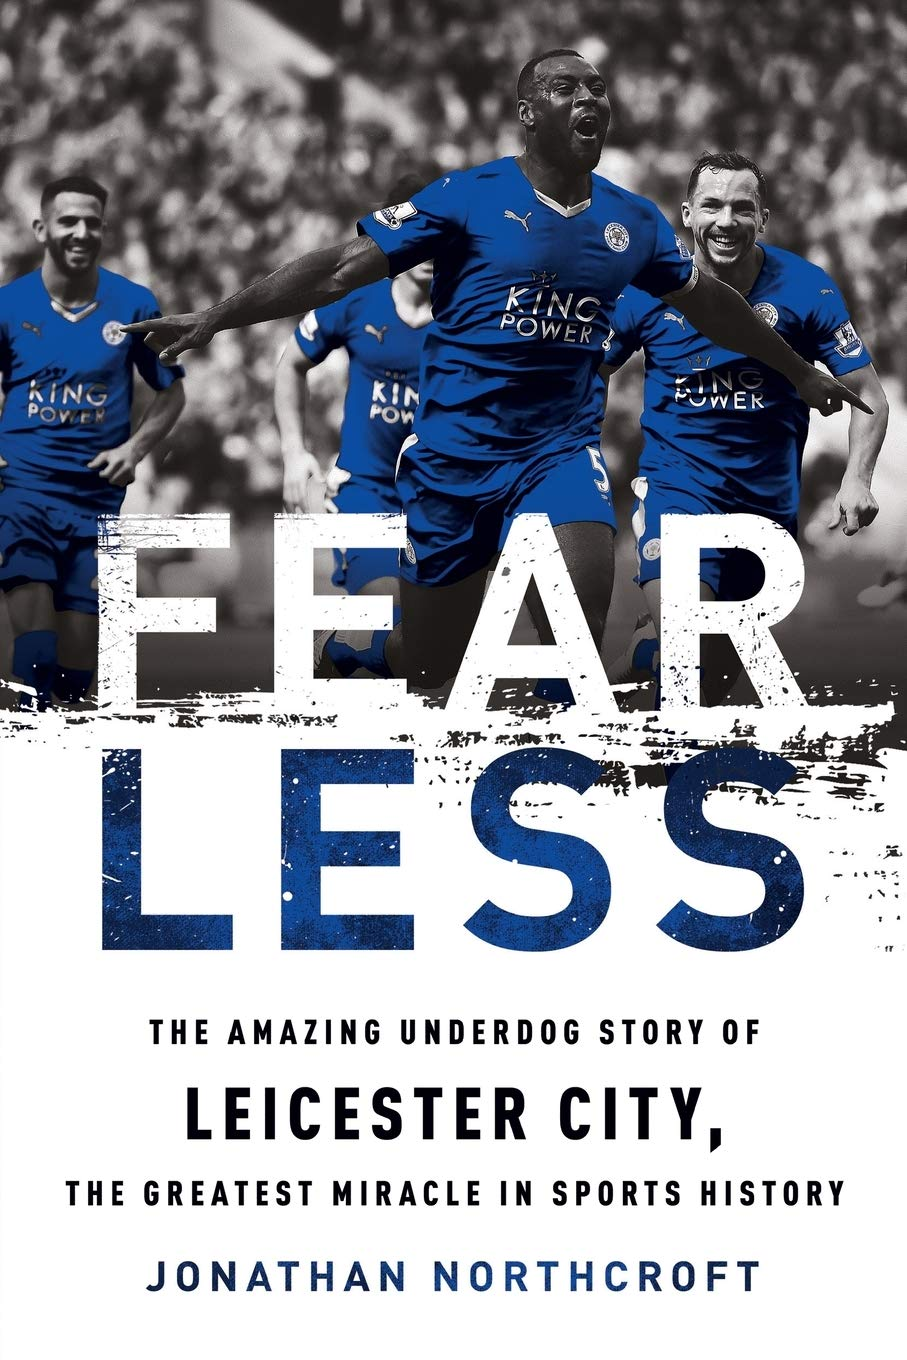 Fearless The Amazing Underdog Story Of Leicester City The Greatest Miracle In Sports History Northcroft Jonathan 9781568589824 Books Amazon Ca